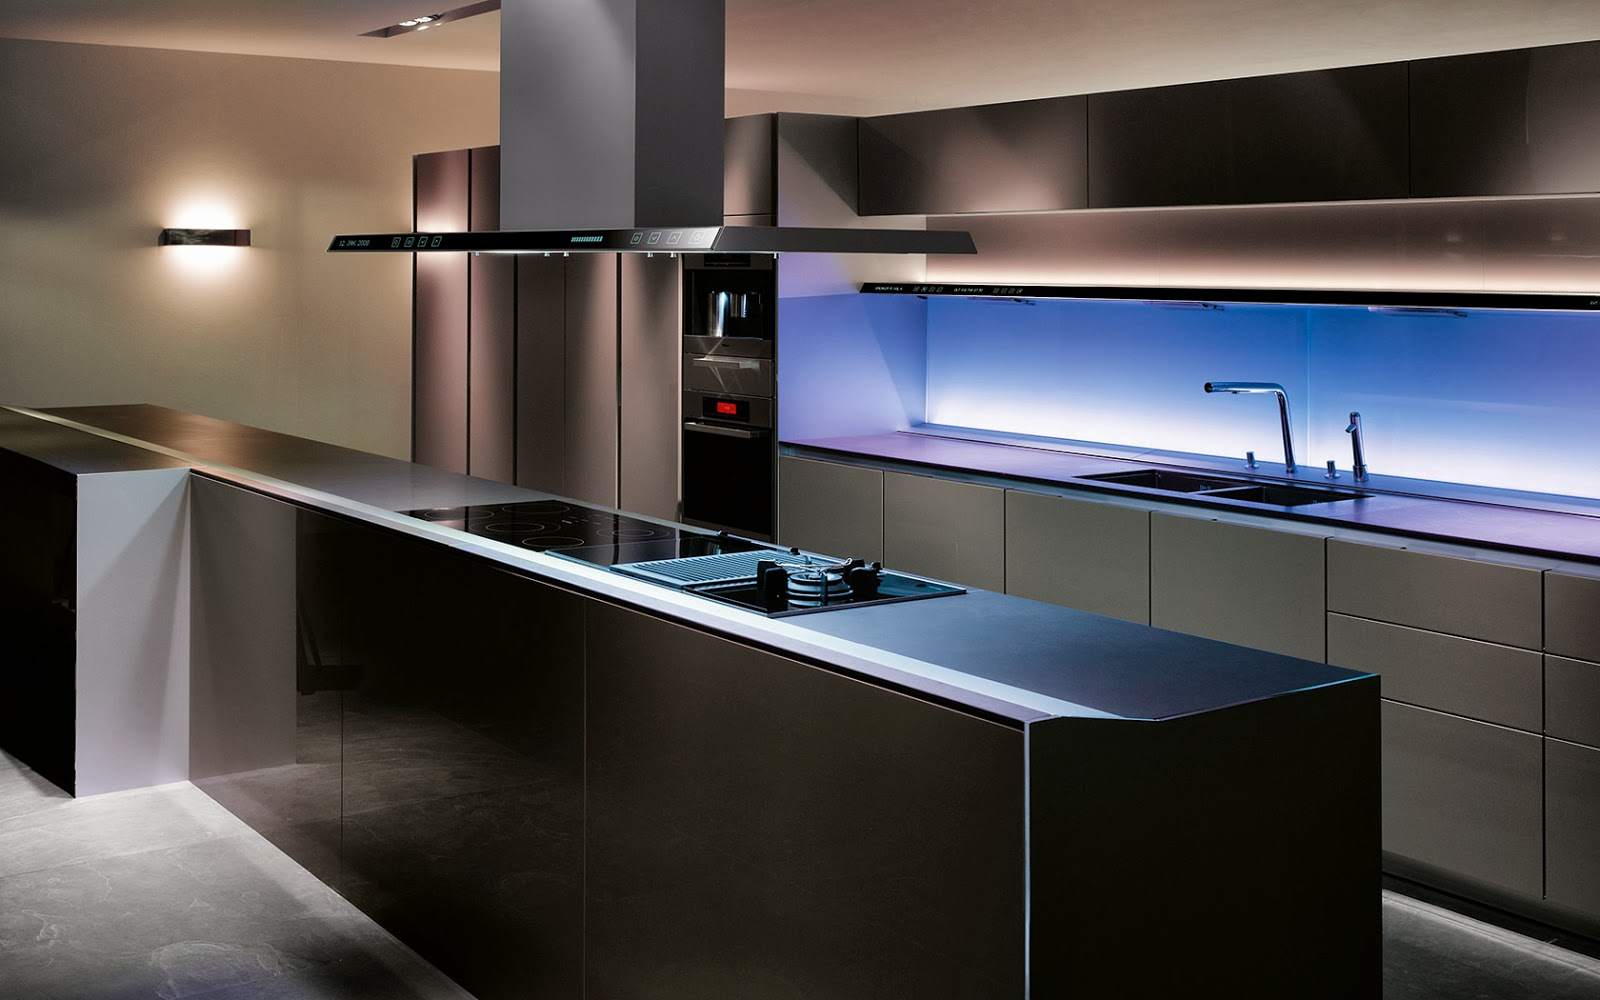 Cuisine parallele sans poignees par siematic for Photo cuisine design